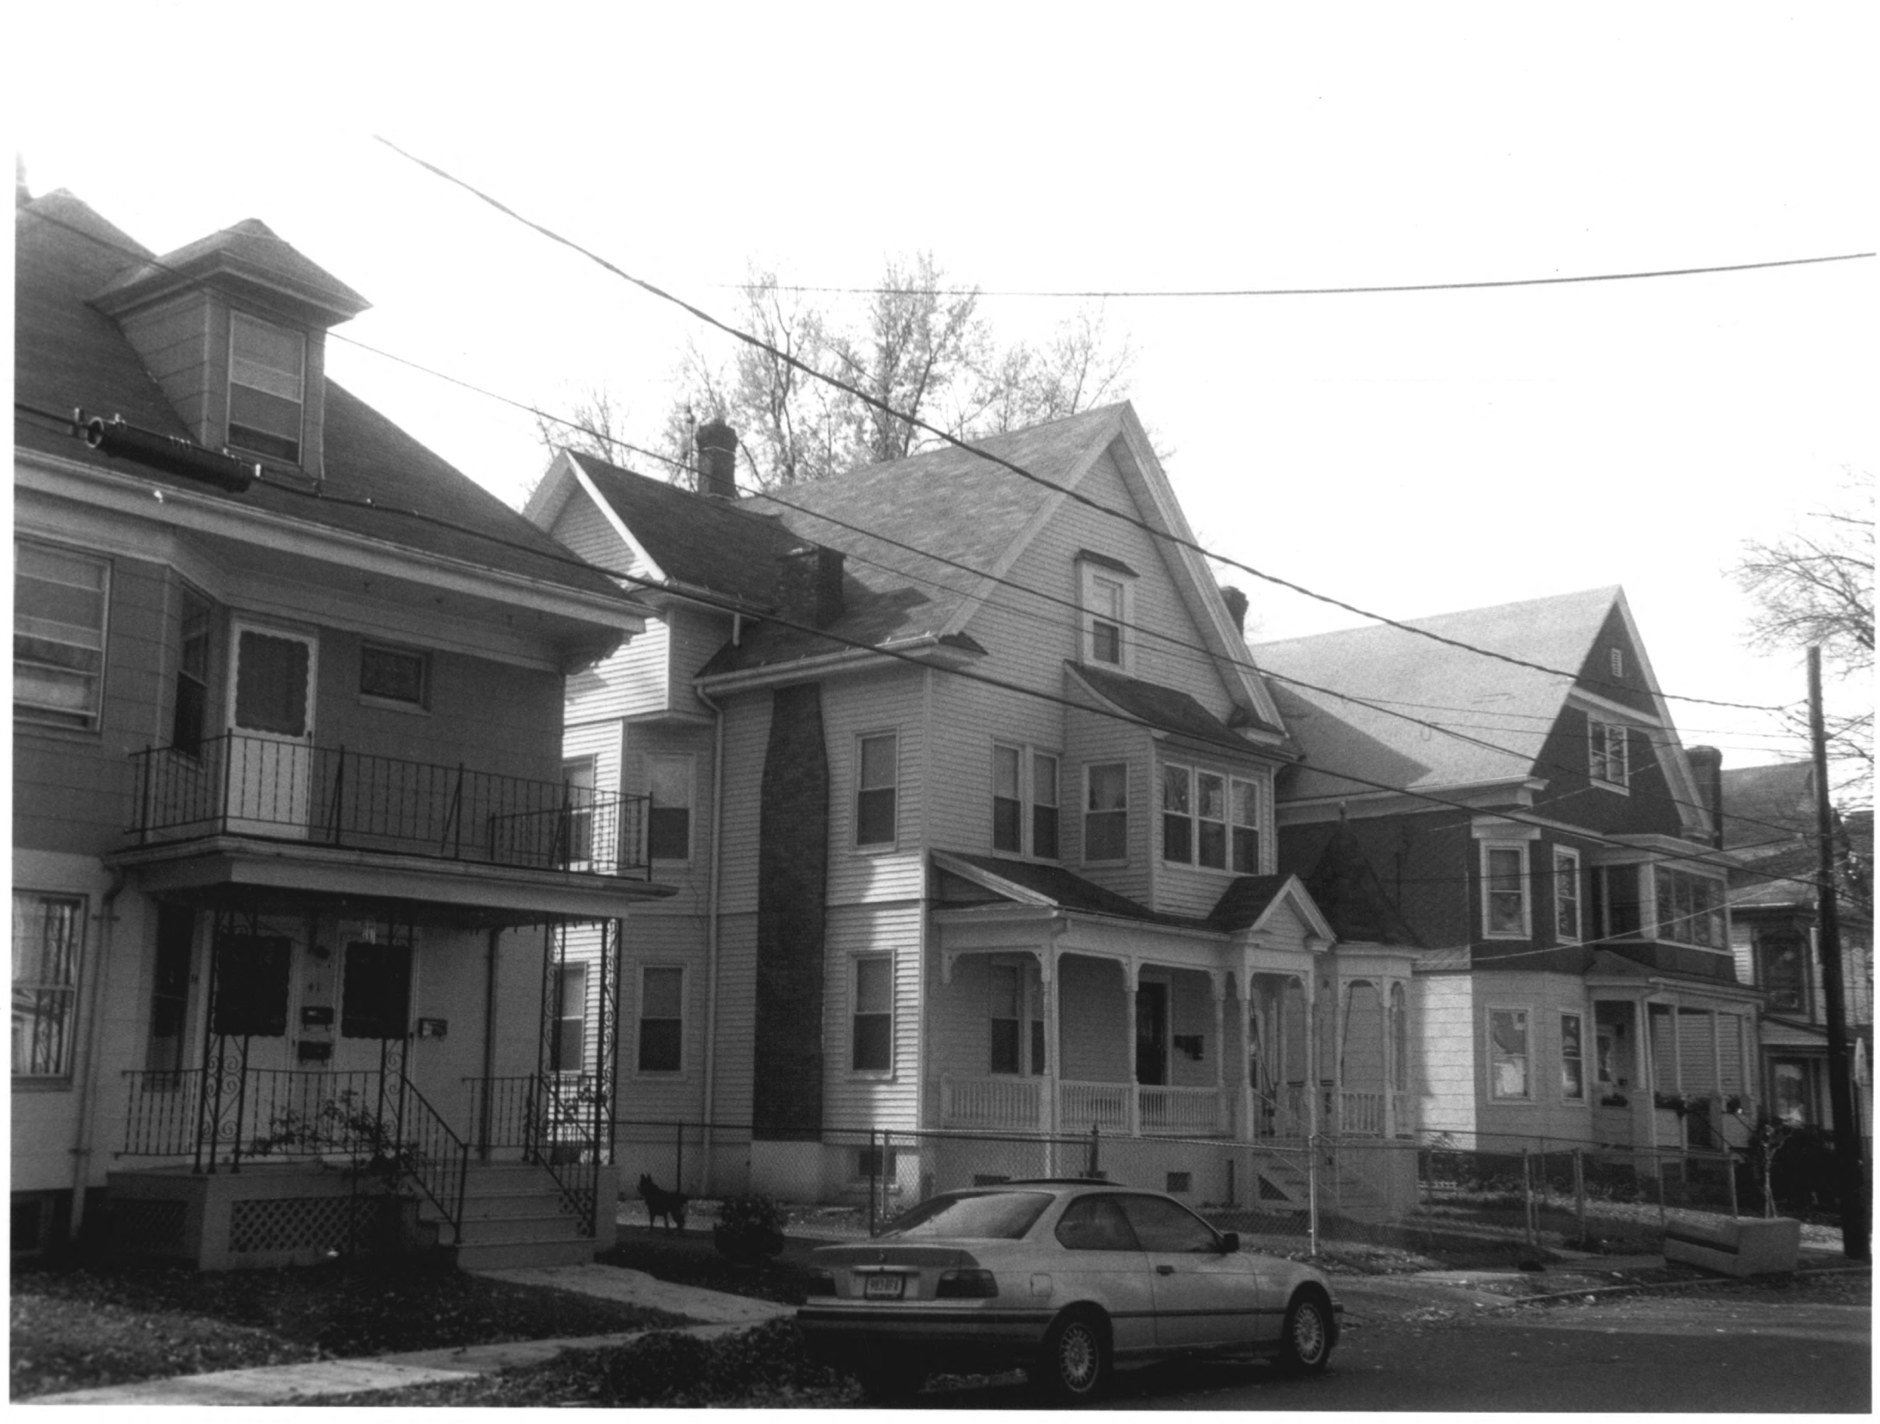 Allen Place - Lincoln Street Historic District Photo Record, Maintained by the NPS, Photo 1